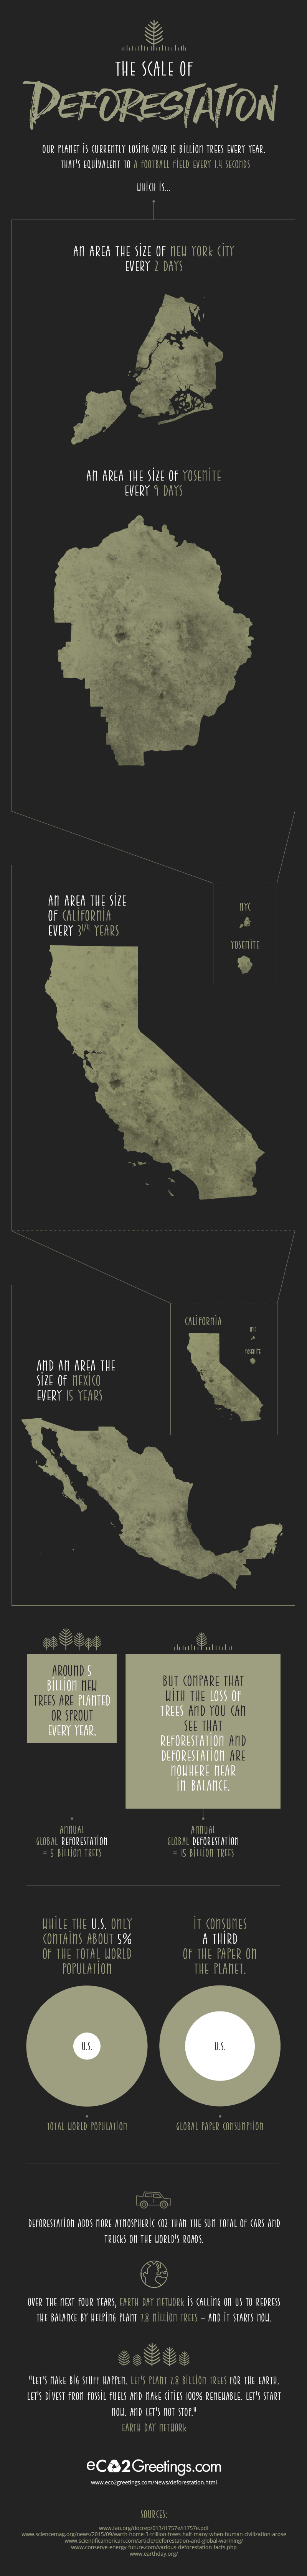 The Scale of Deforestation [Infographic]